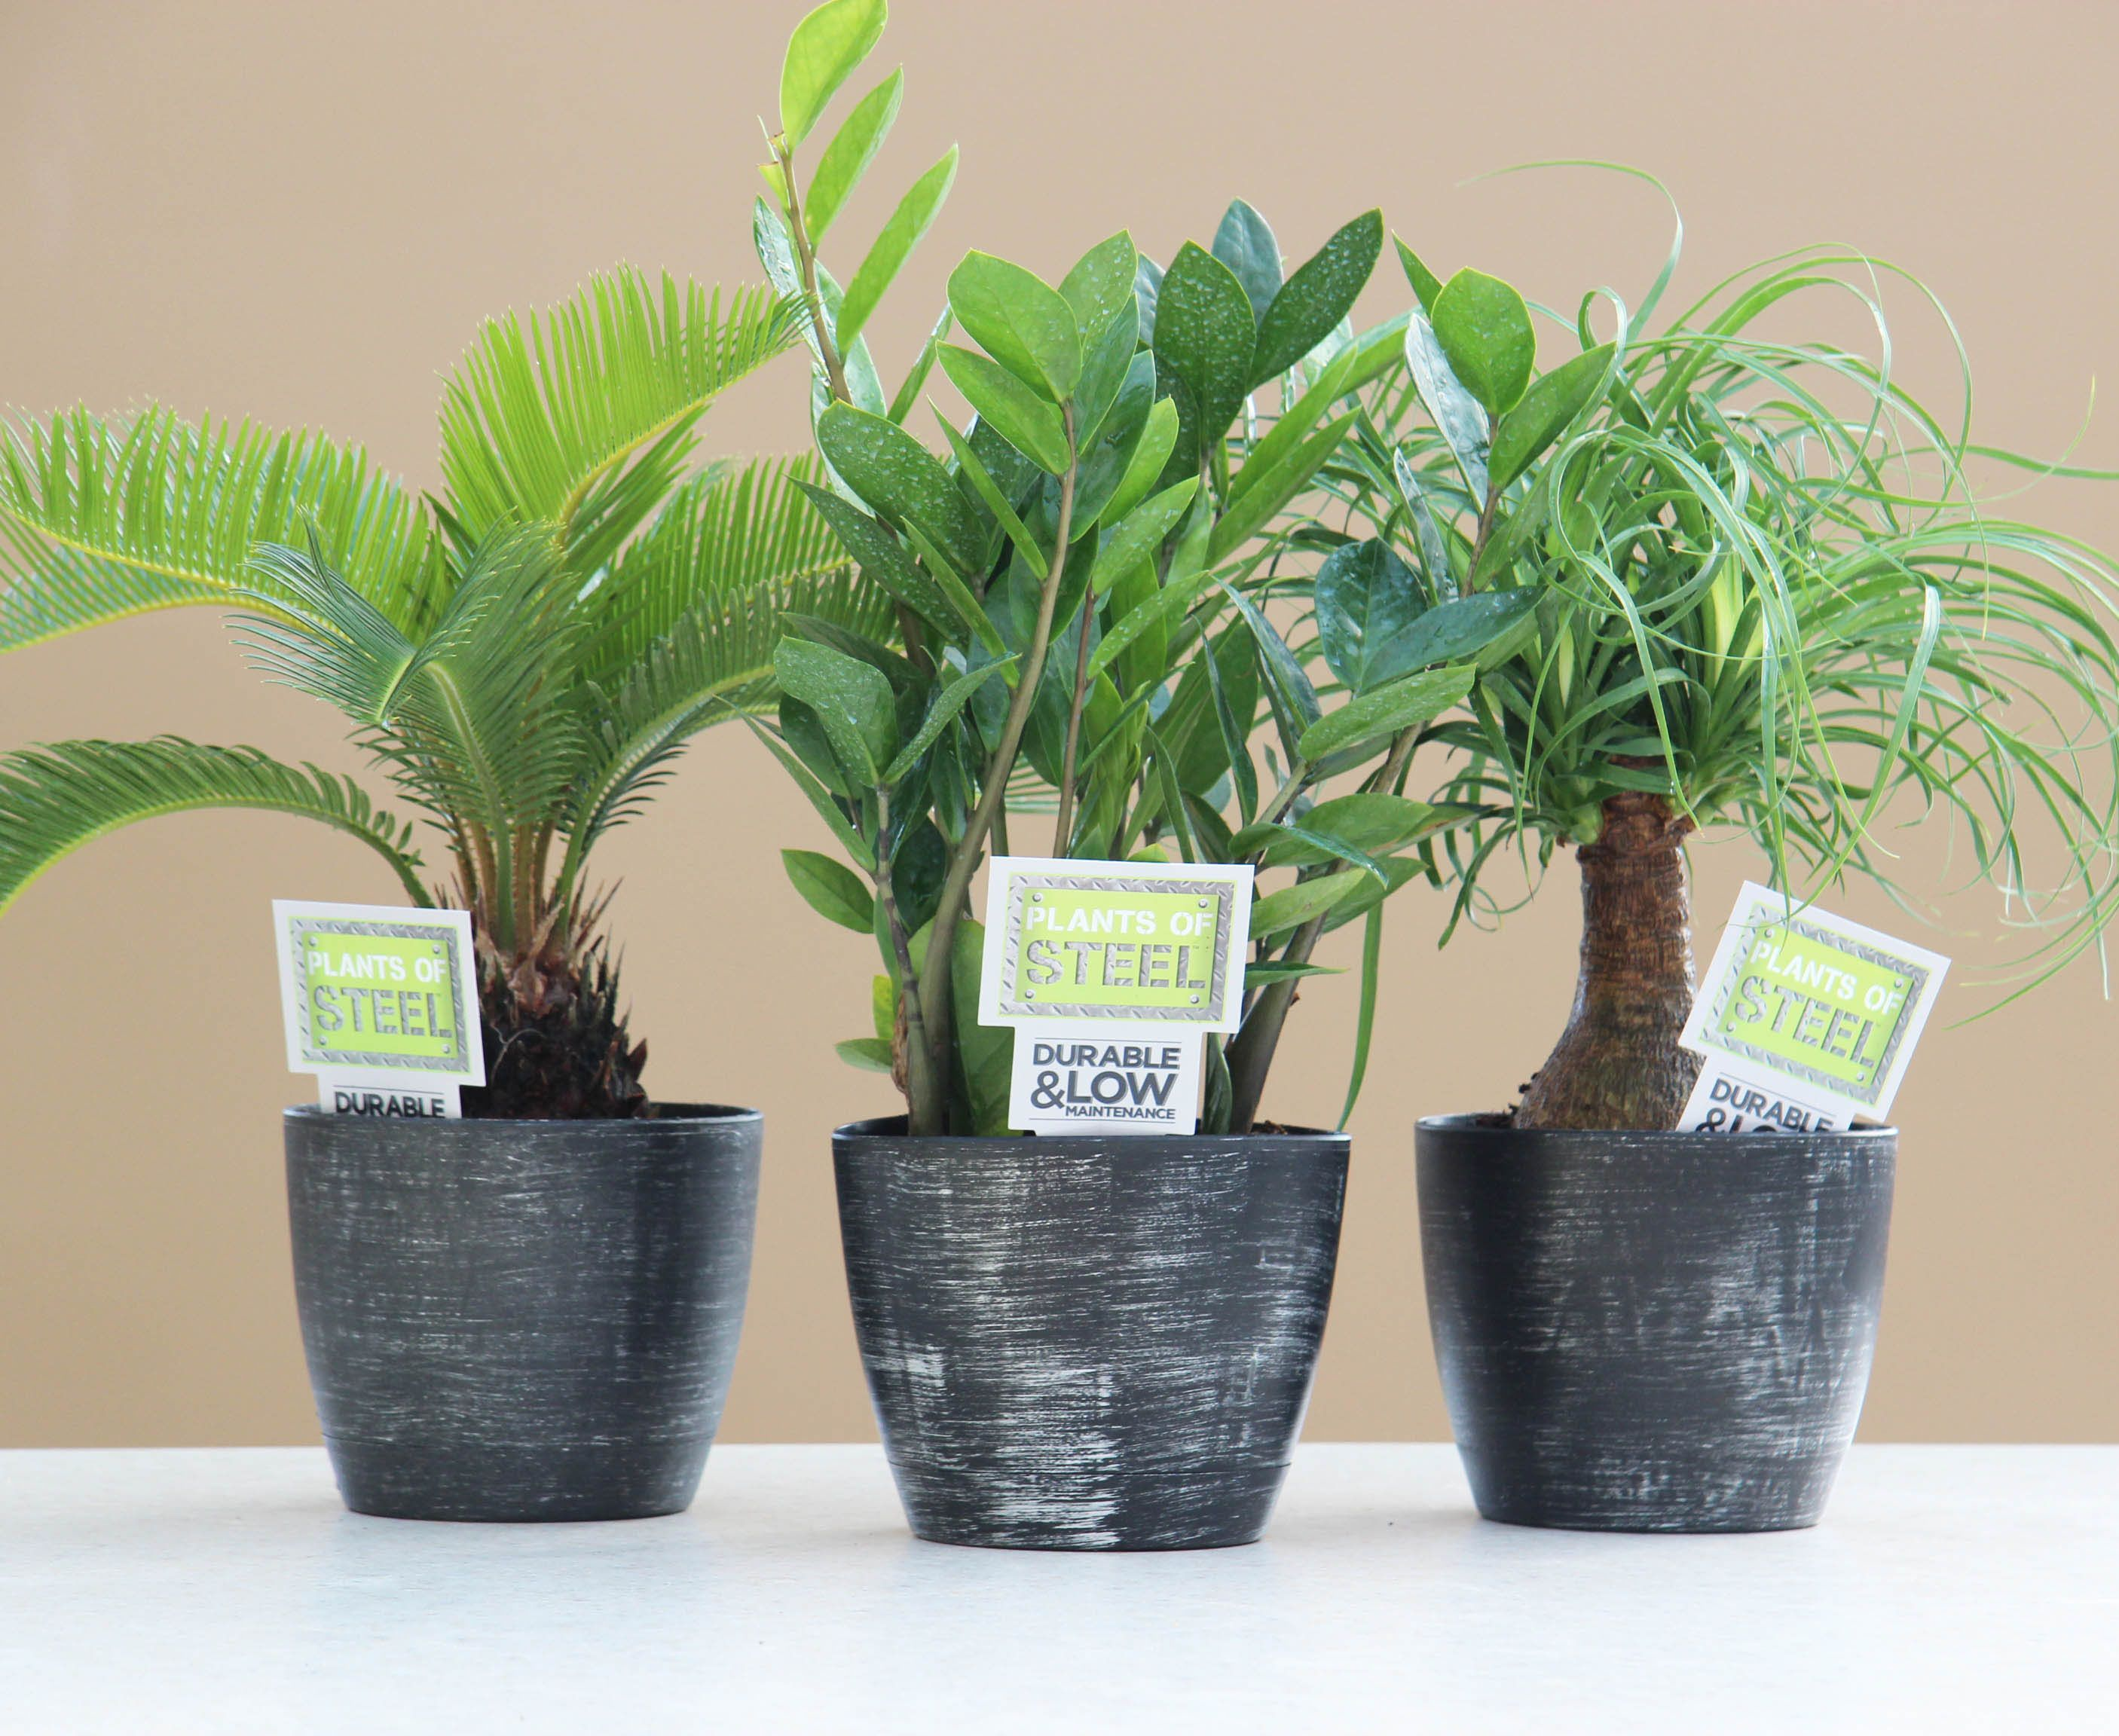 Awesome Caring For Tropical Plants Part - 10: Plants Of Steel - Easy To Care For House Plants